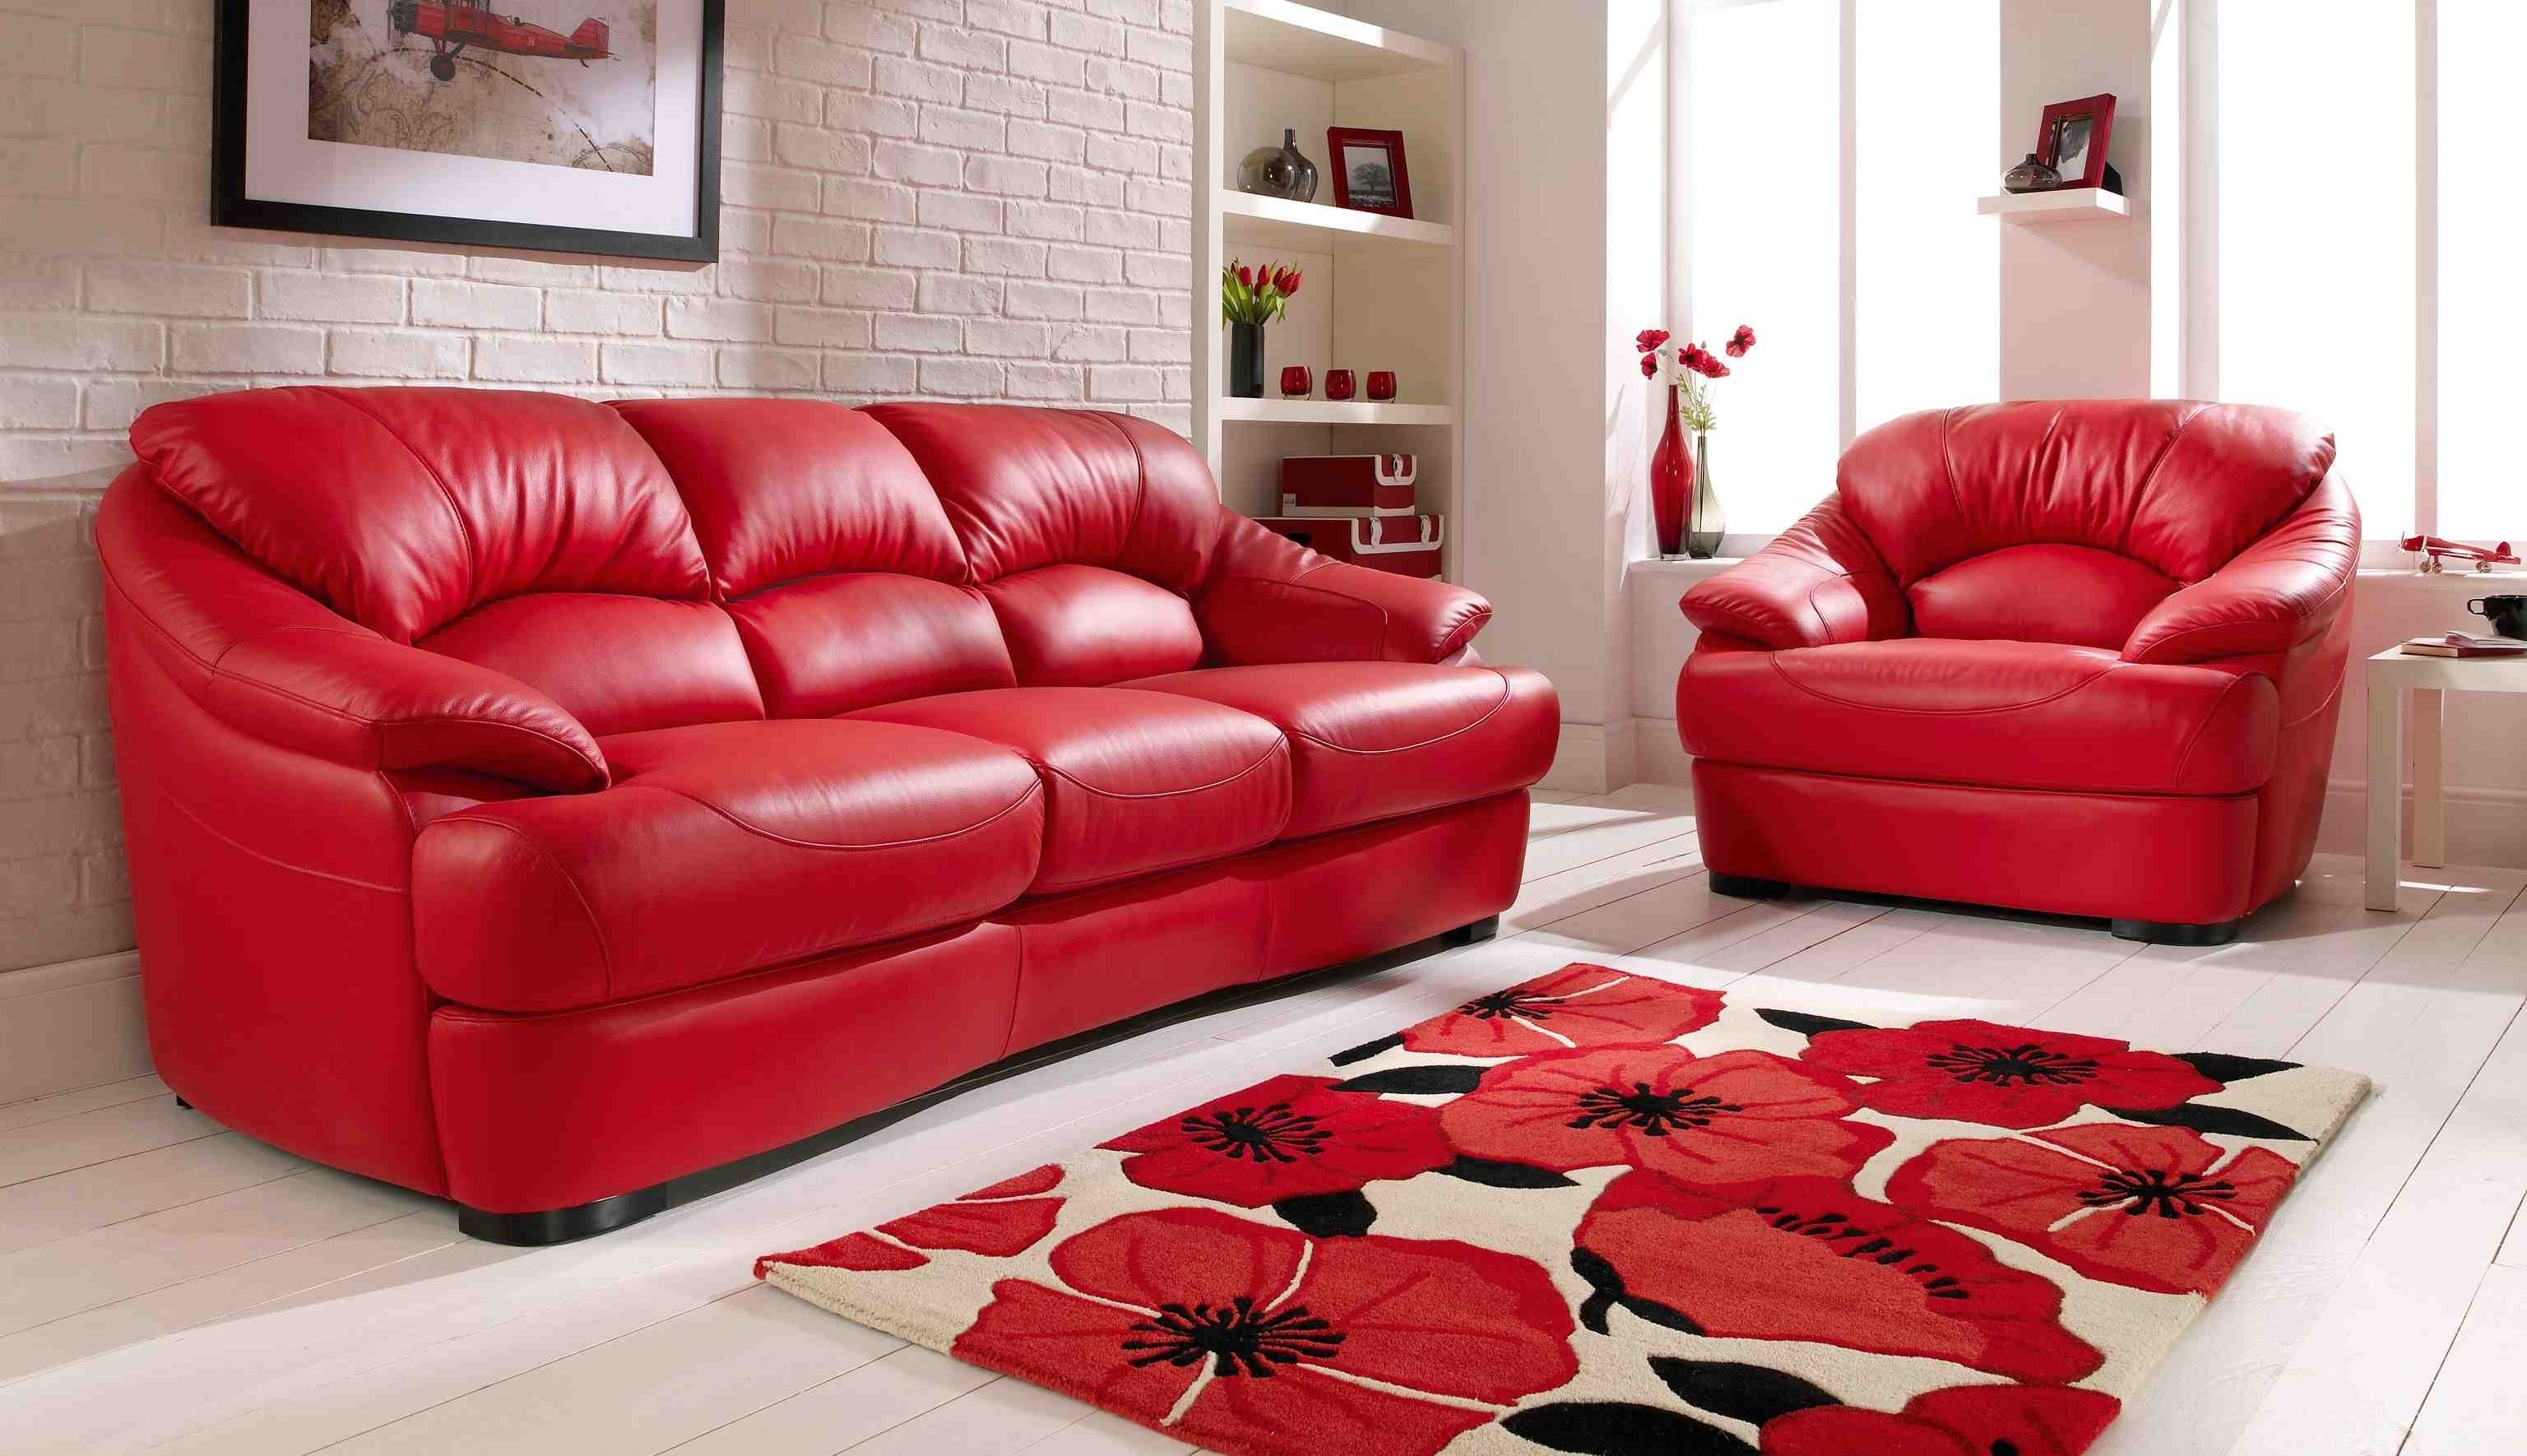 Red Leather Couches Pertaining To Current Red Leather Sofa Living Room Ideas Home Design Ideas Pertaining To (View 8 of 15)